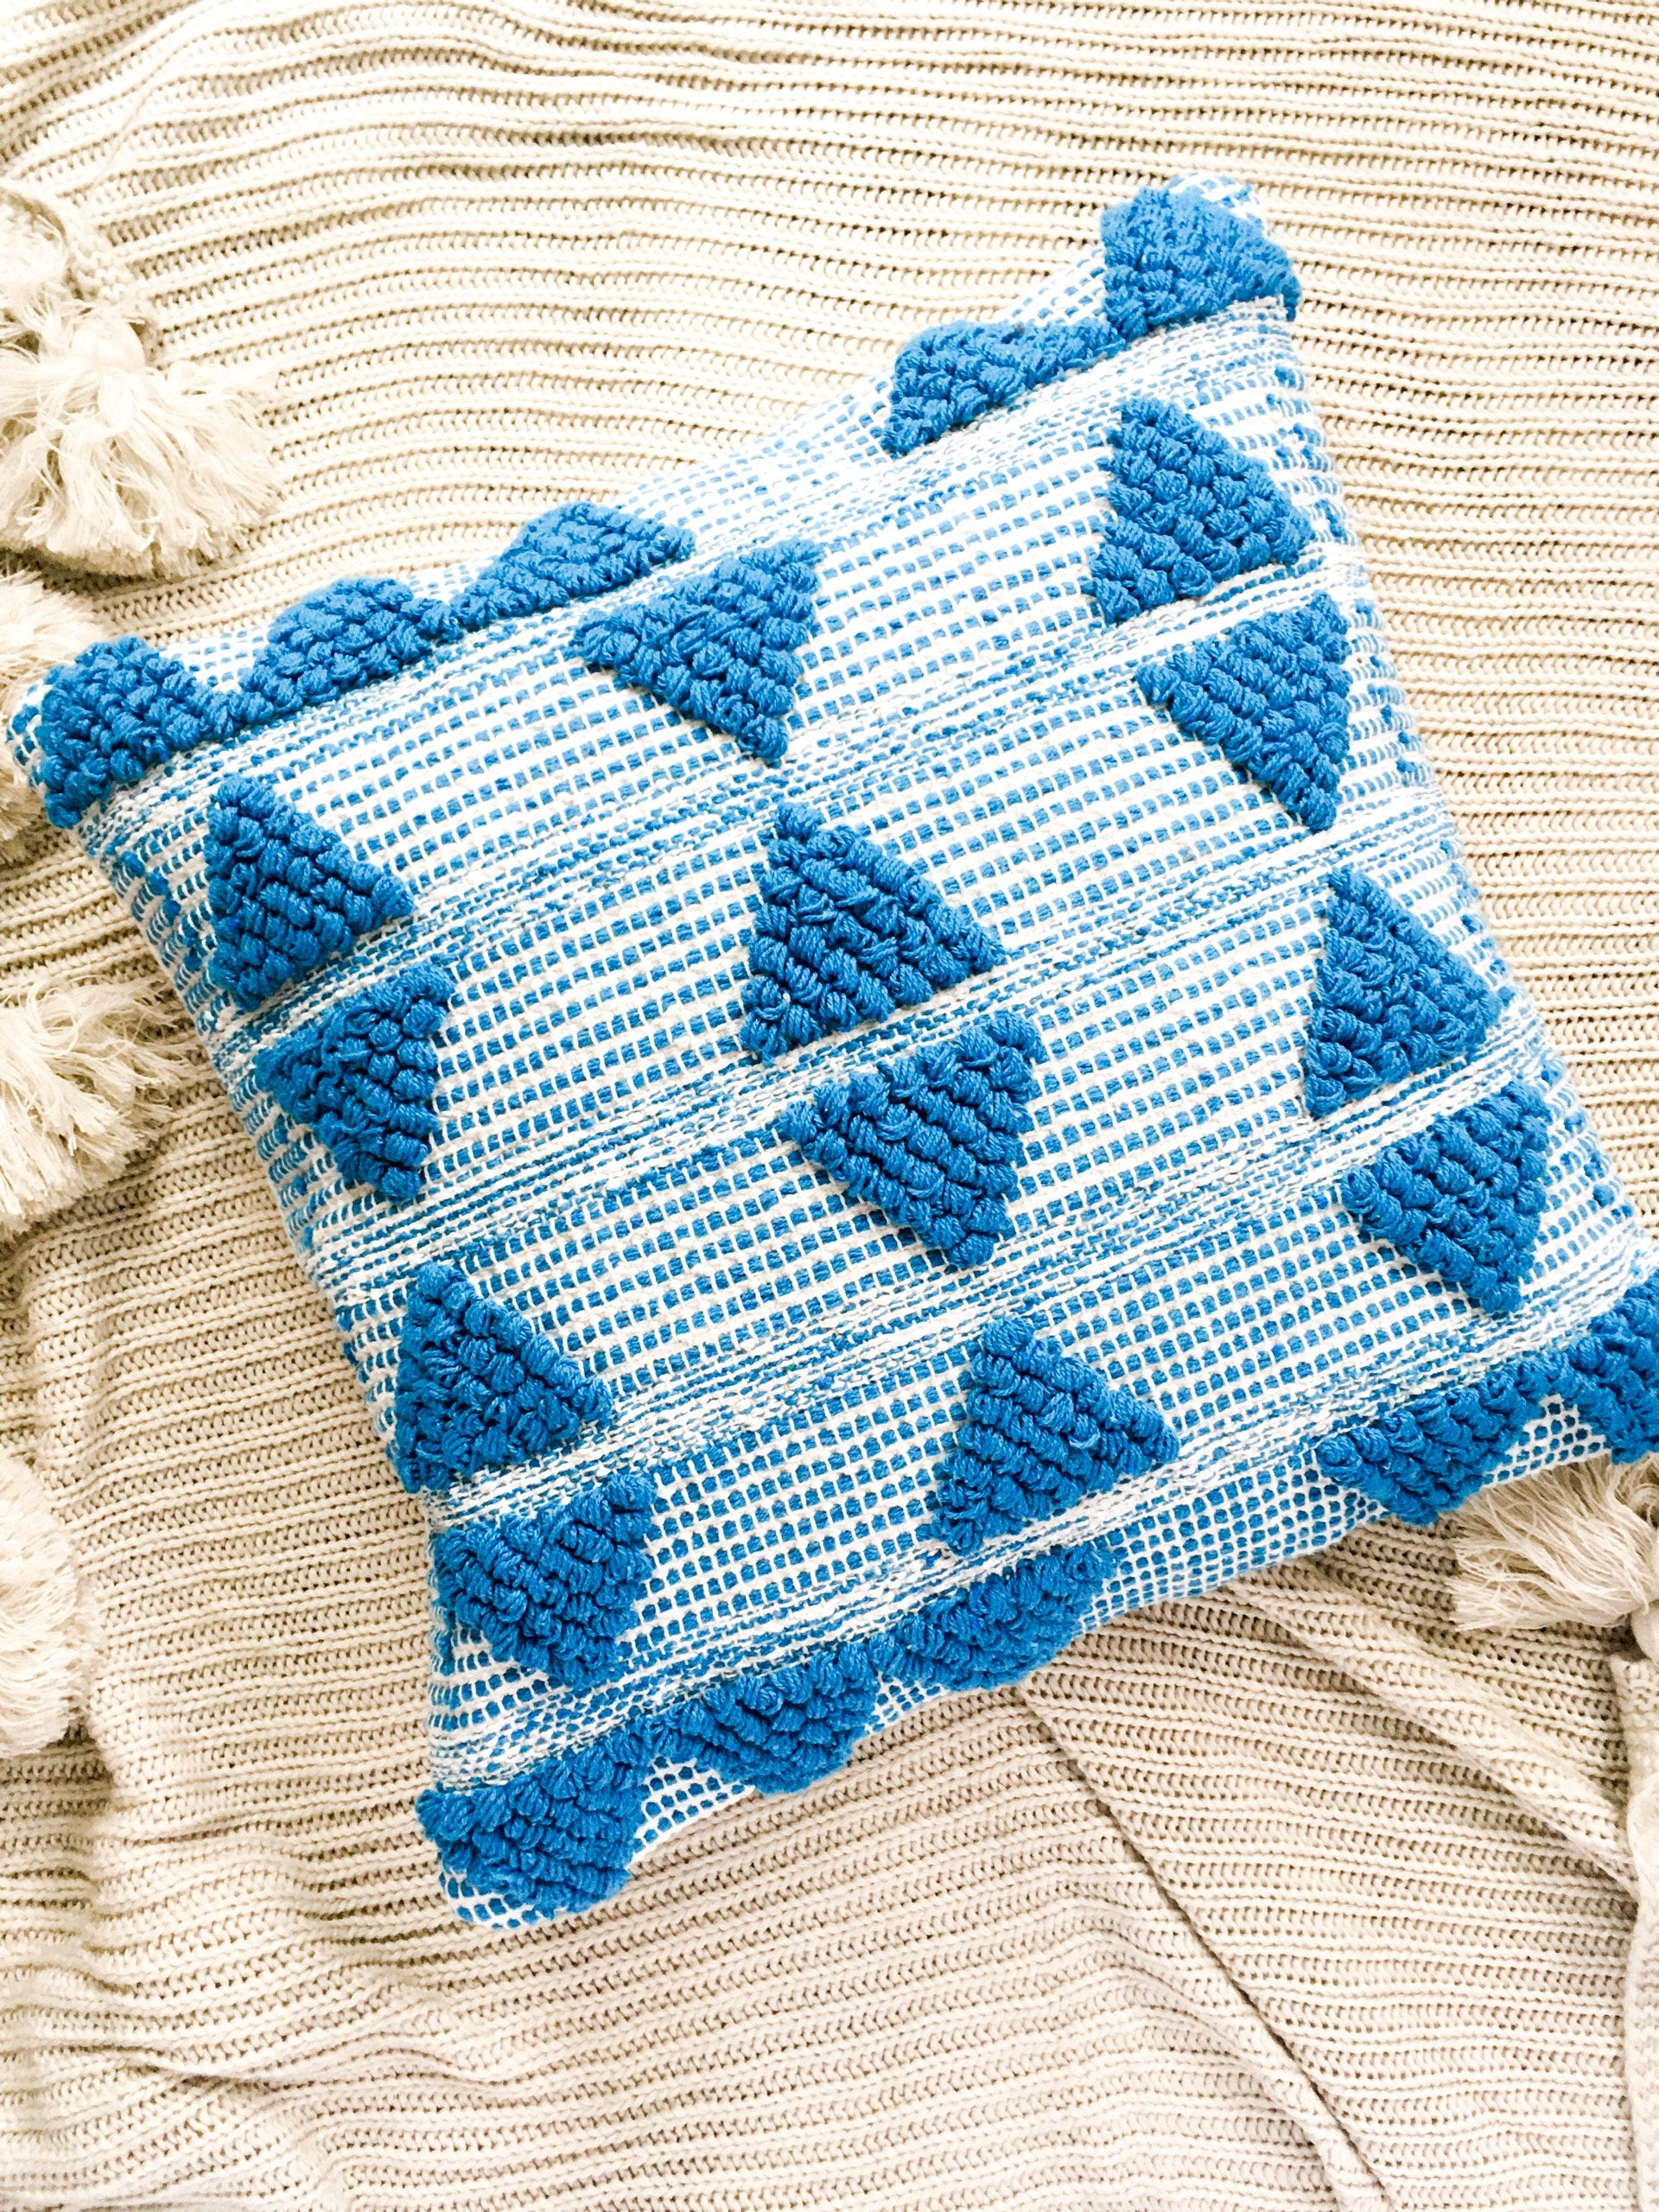 Aden Texture Cushion Cover - Turquoise